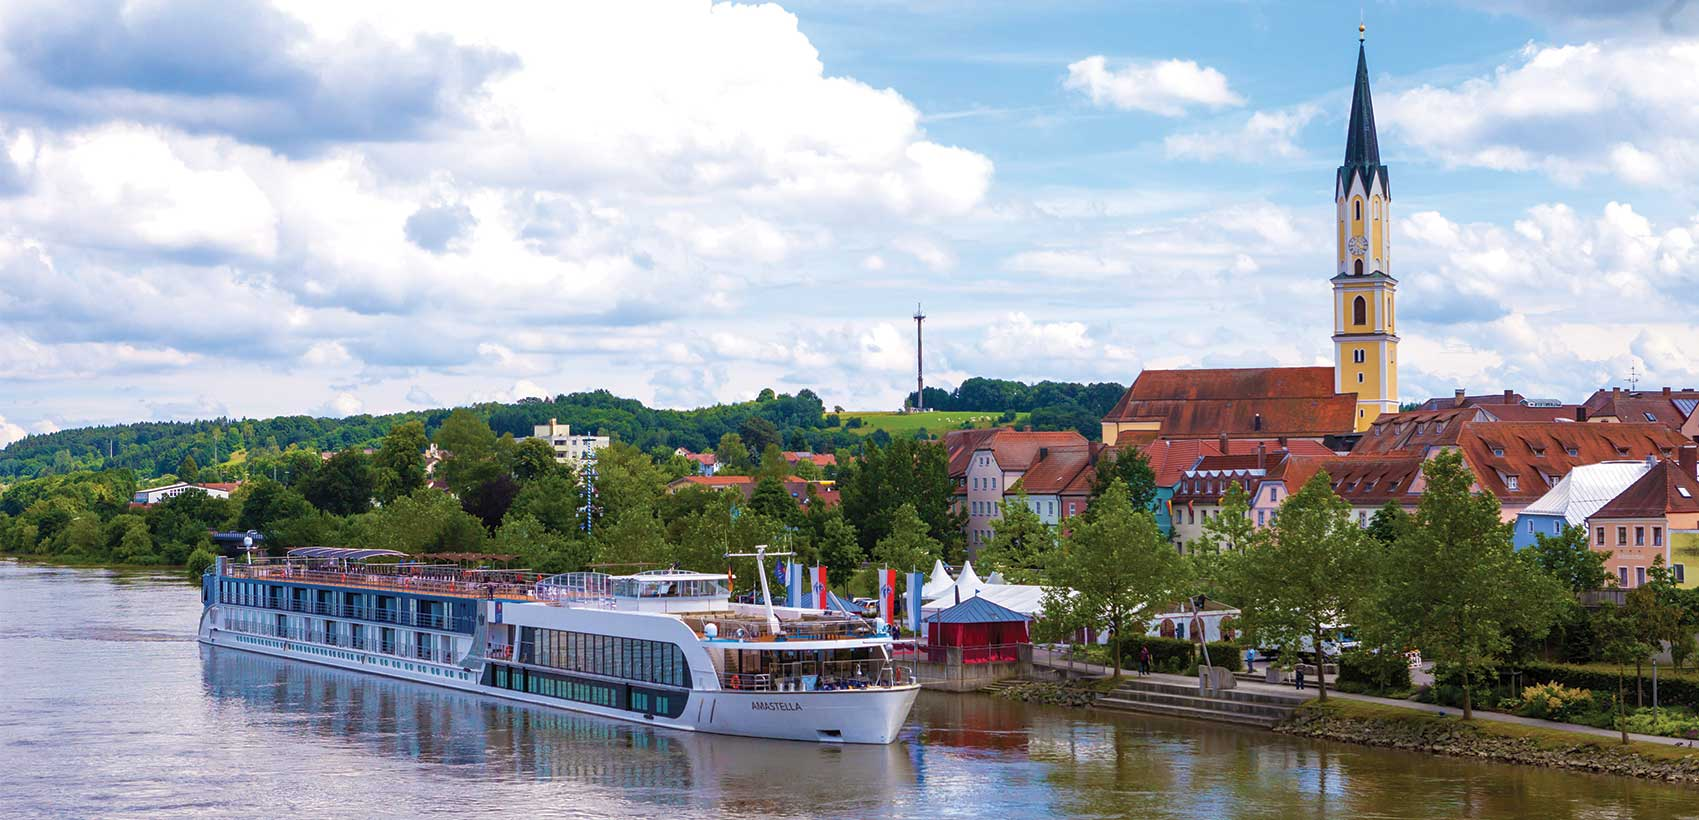 Save up to $2,000 Per Stateroom on Select Sailings with AmaWaterways! 4